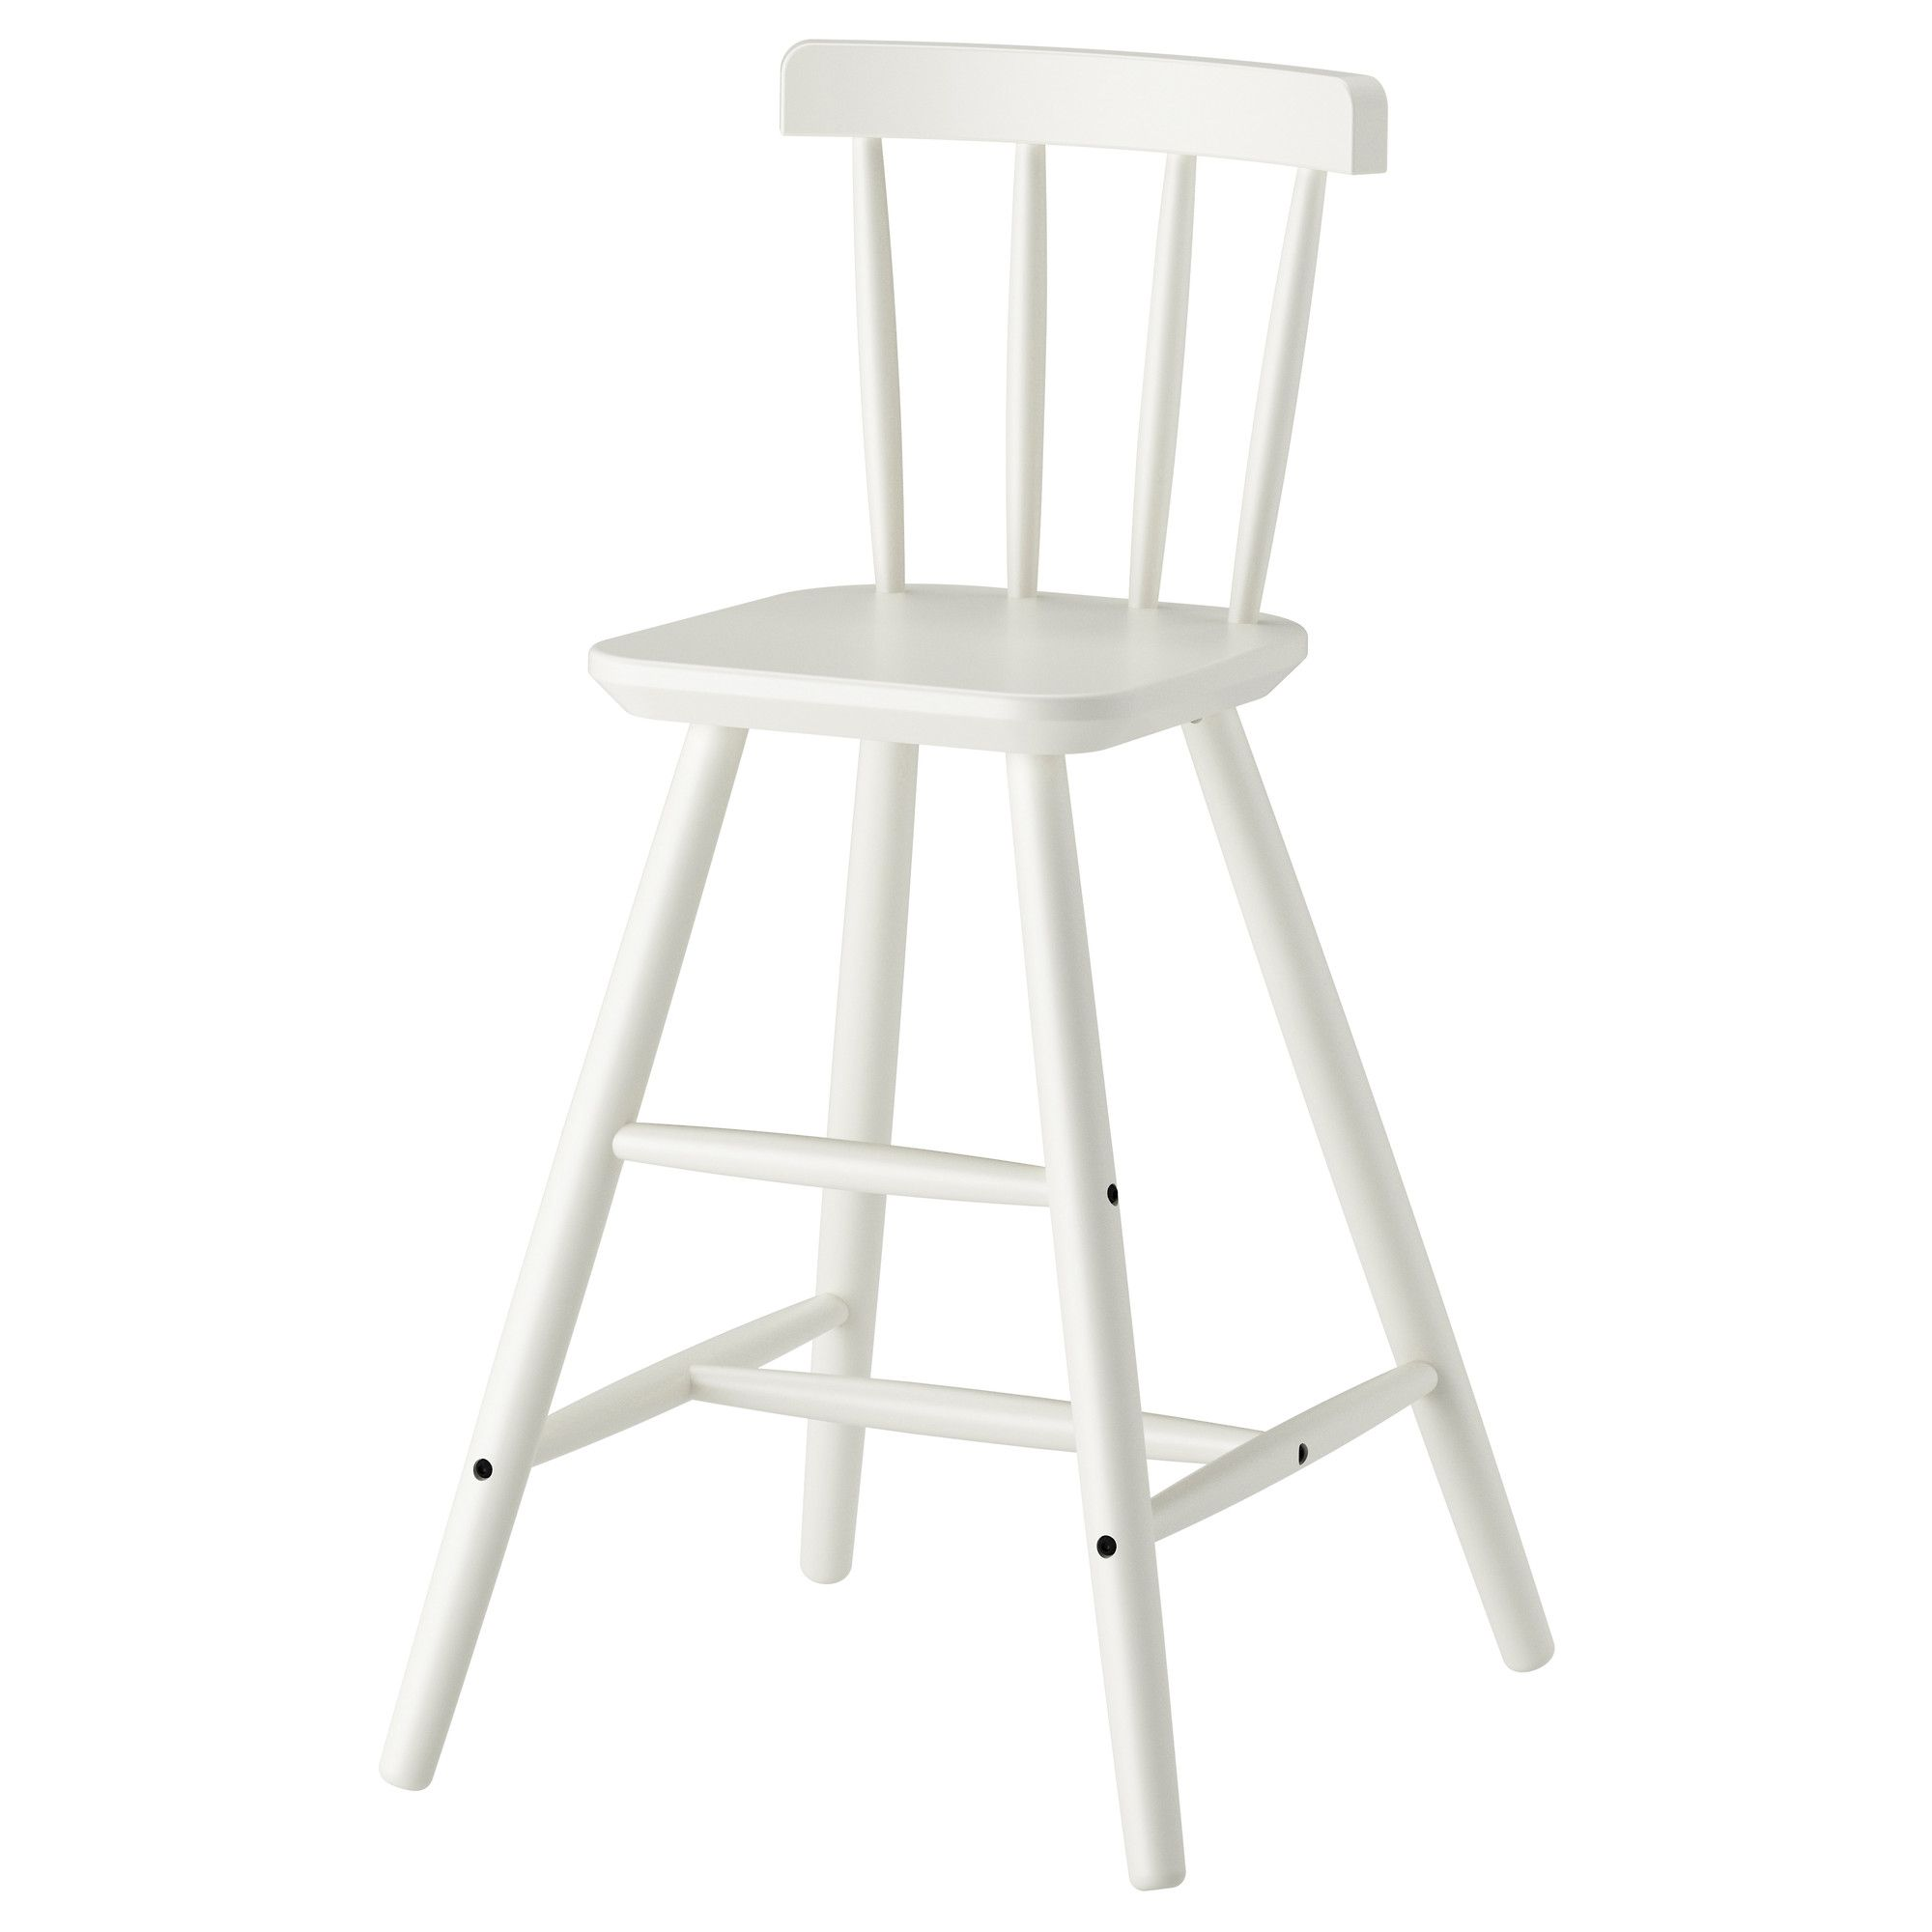 AGAM Junior chair white